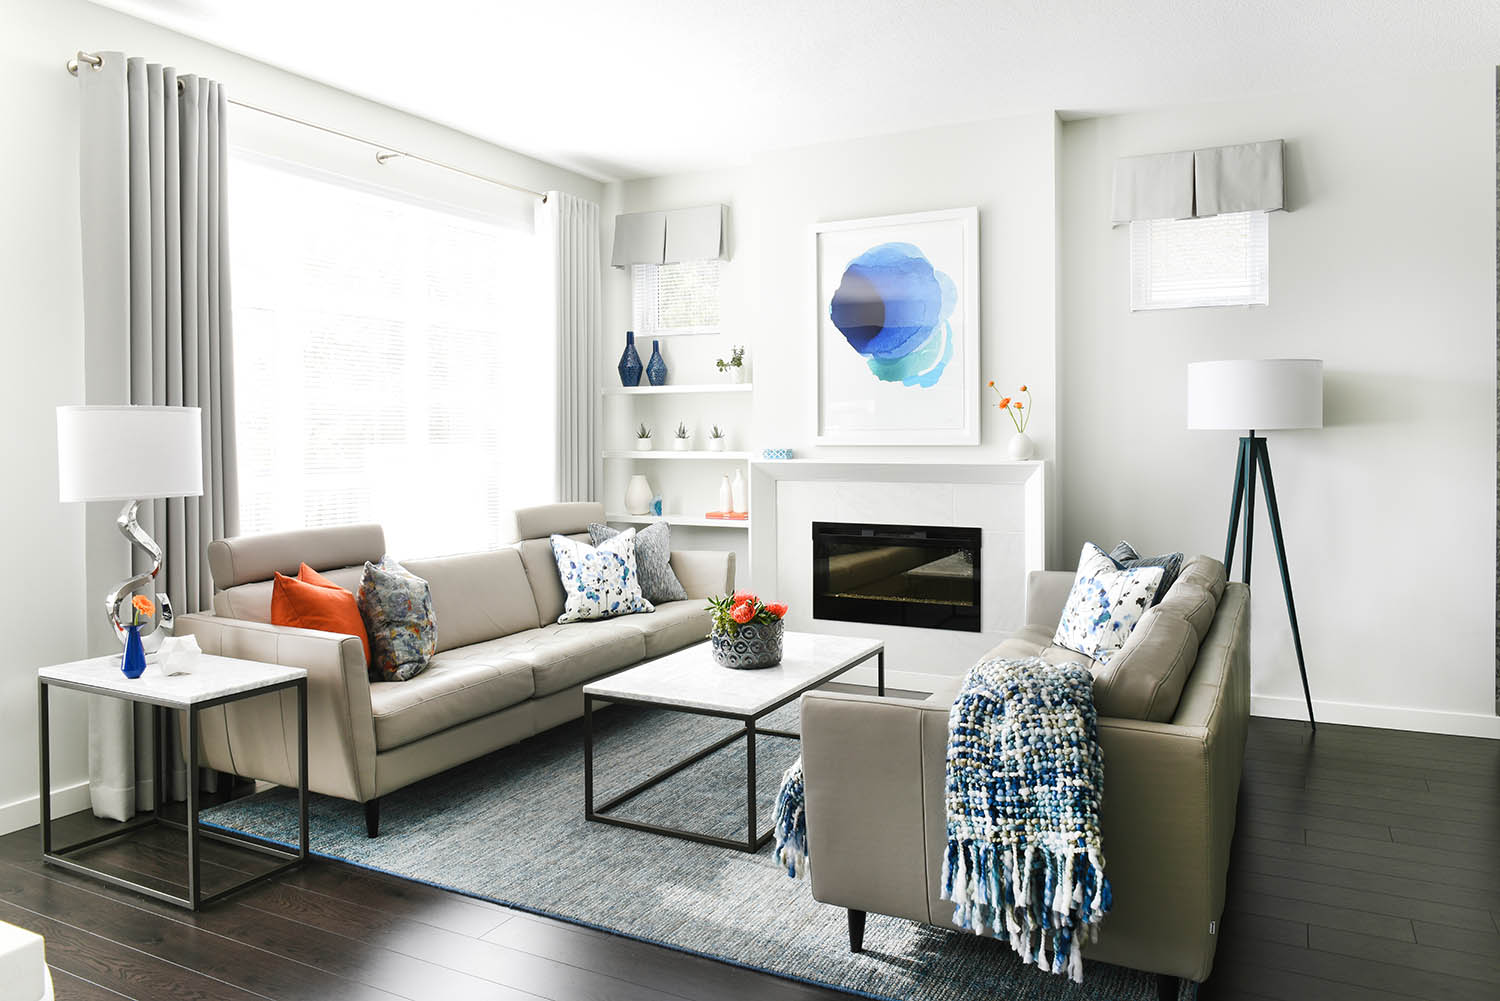 Vancouver interior design simply home decorating playful modern townhouse 02